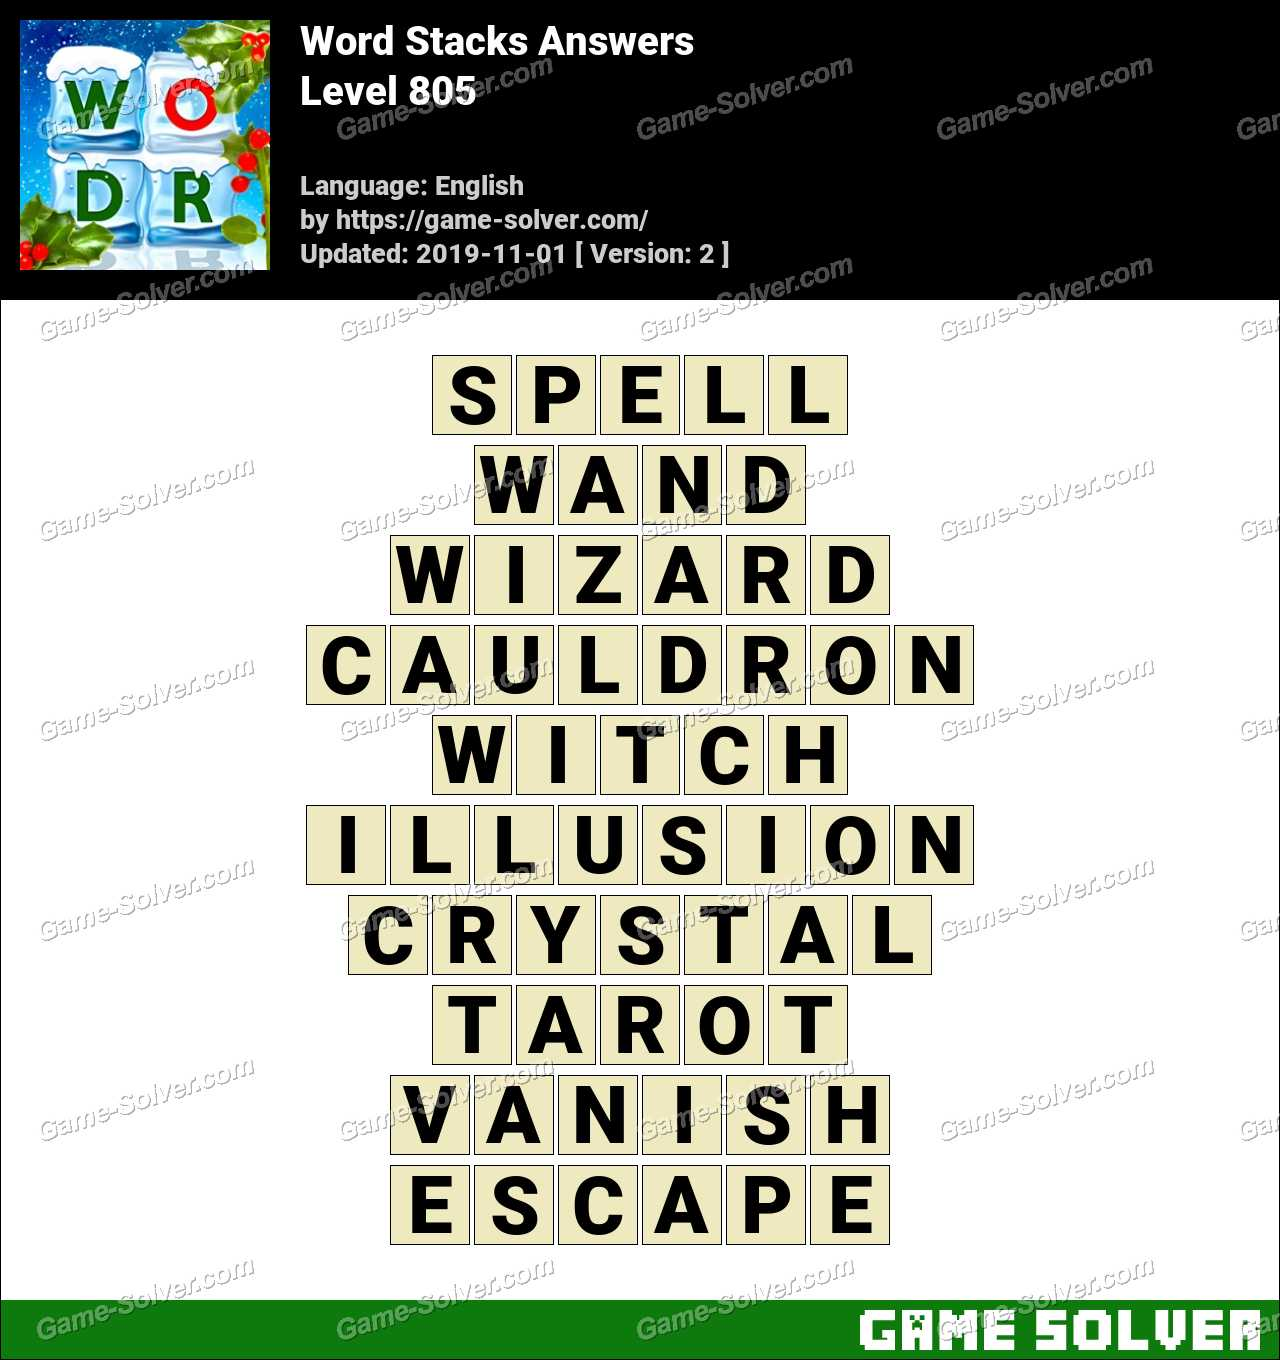 Word Stacks Level 805 Answers